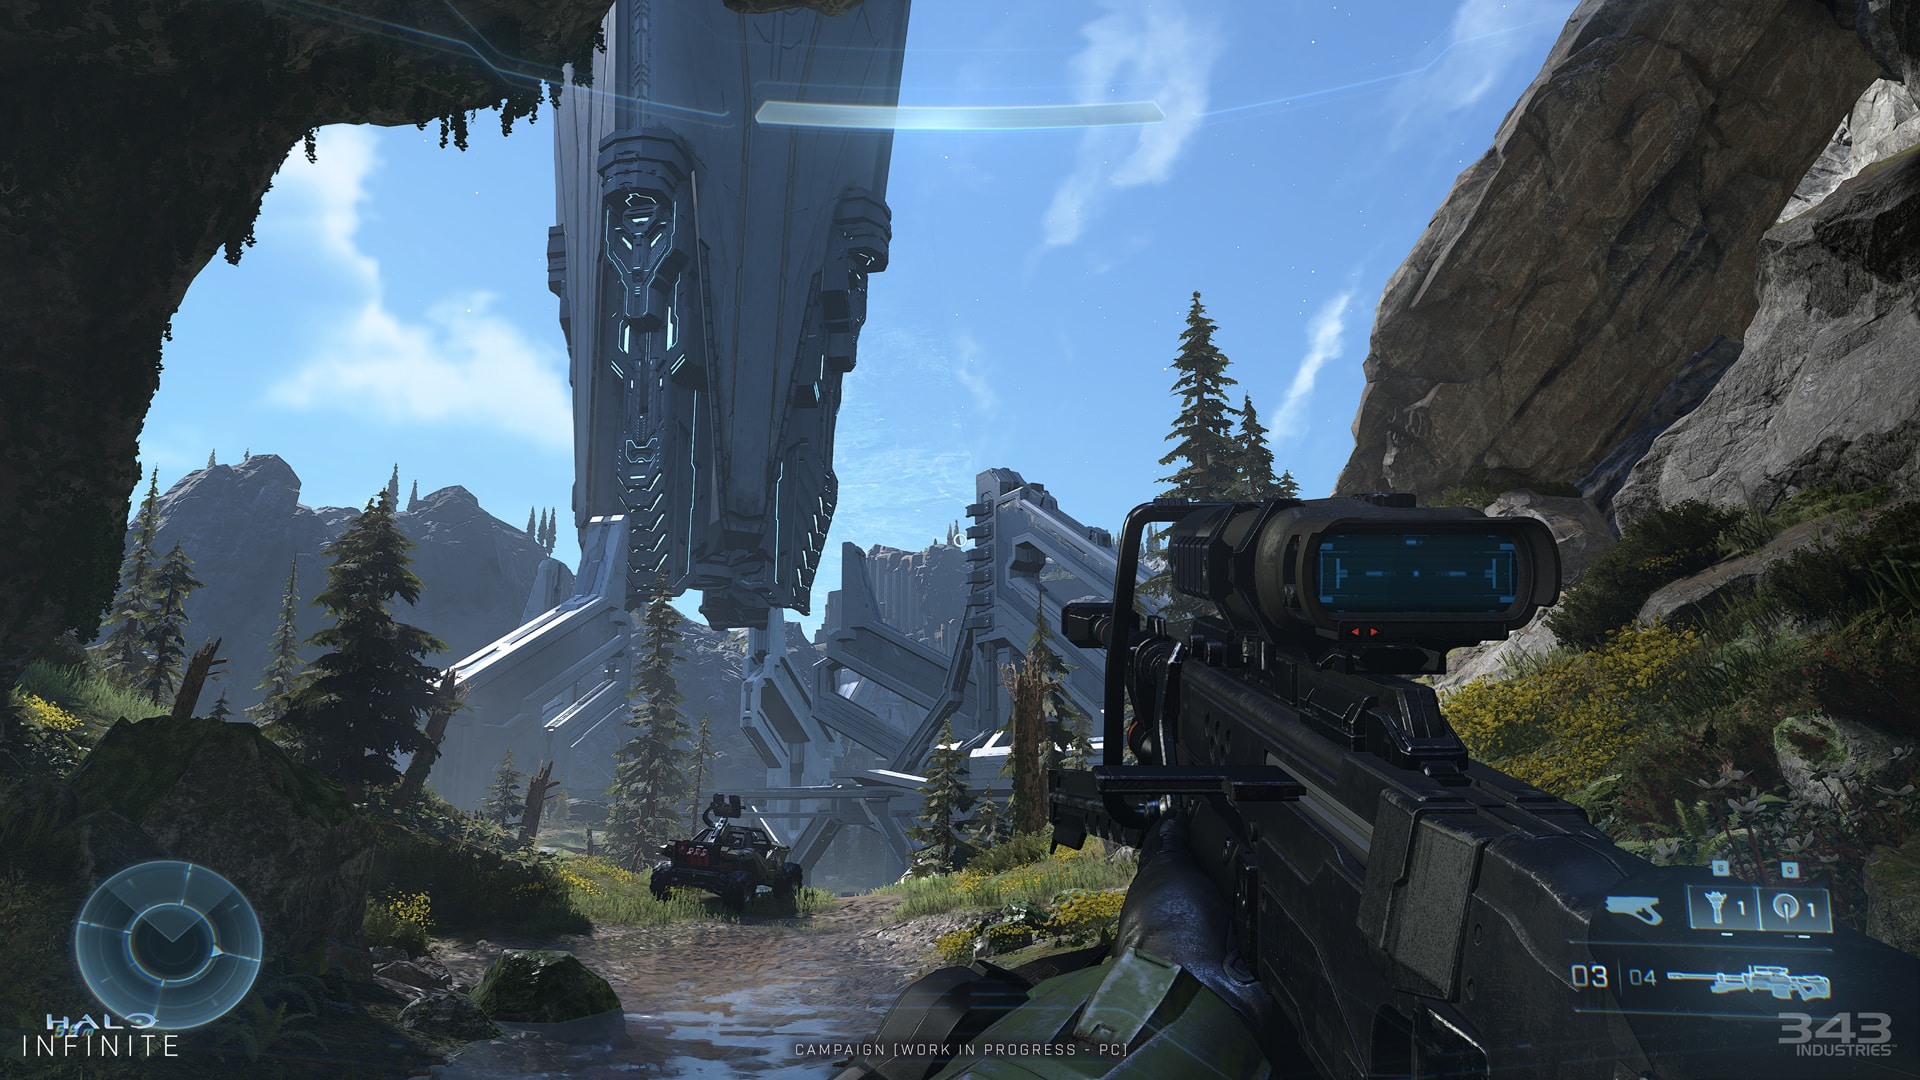 video game developer publisher industry transparency problem: Halo Infinite 343 Industries, Activision Blizzard Call of Duty: Vanguard, Naughty Dog The Last of Us multiplayer, etc.